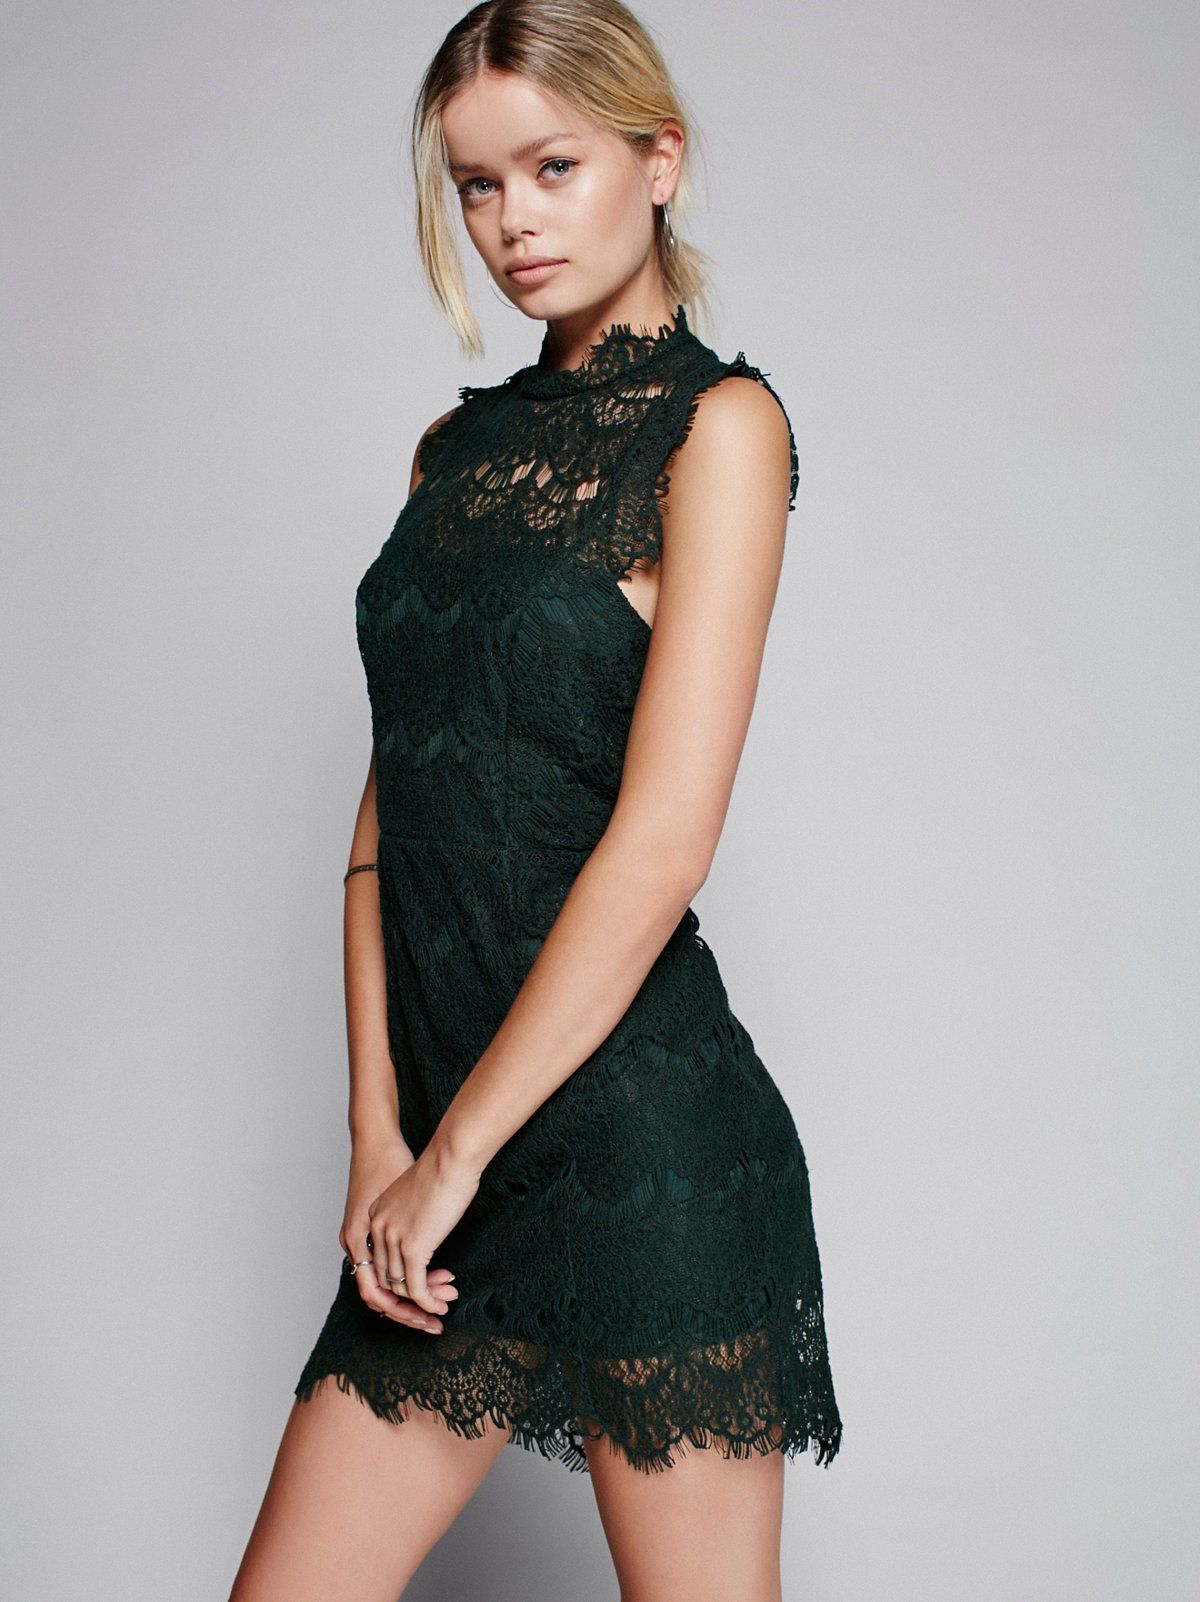 Daydream Bodycon Slip (With images) Fashion models, Lace